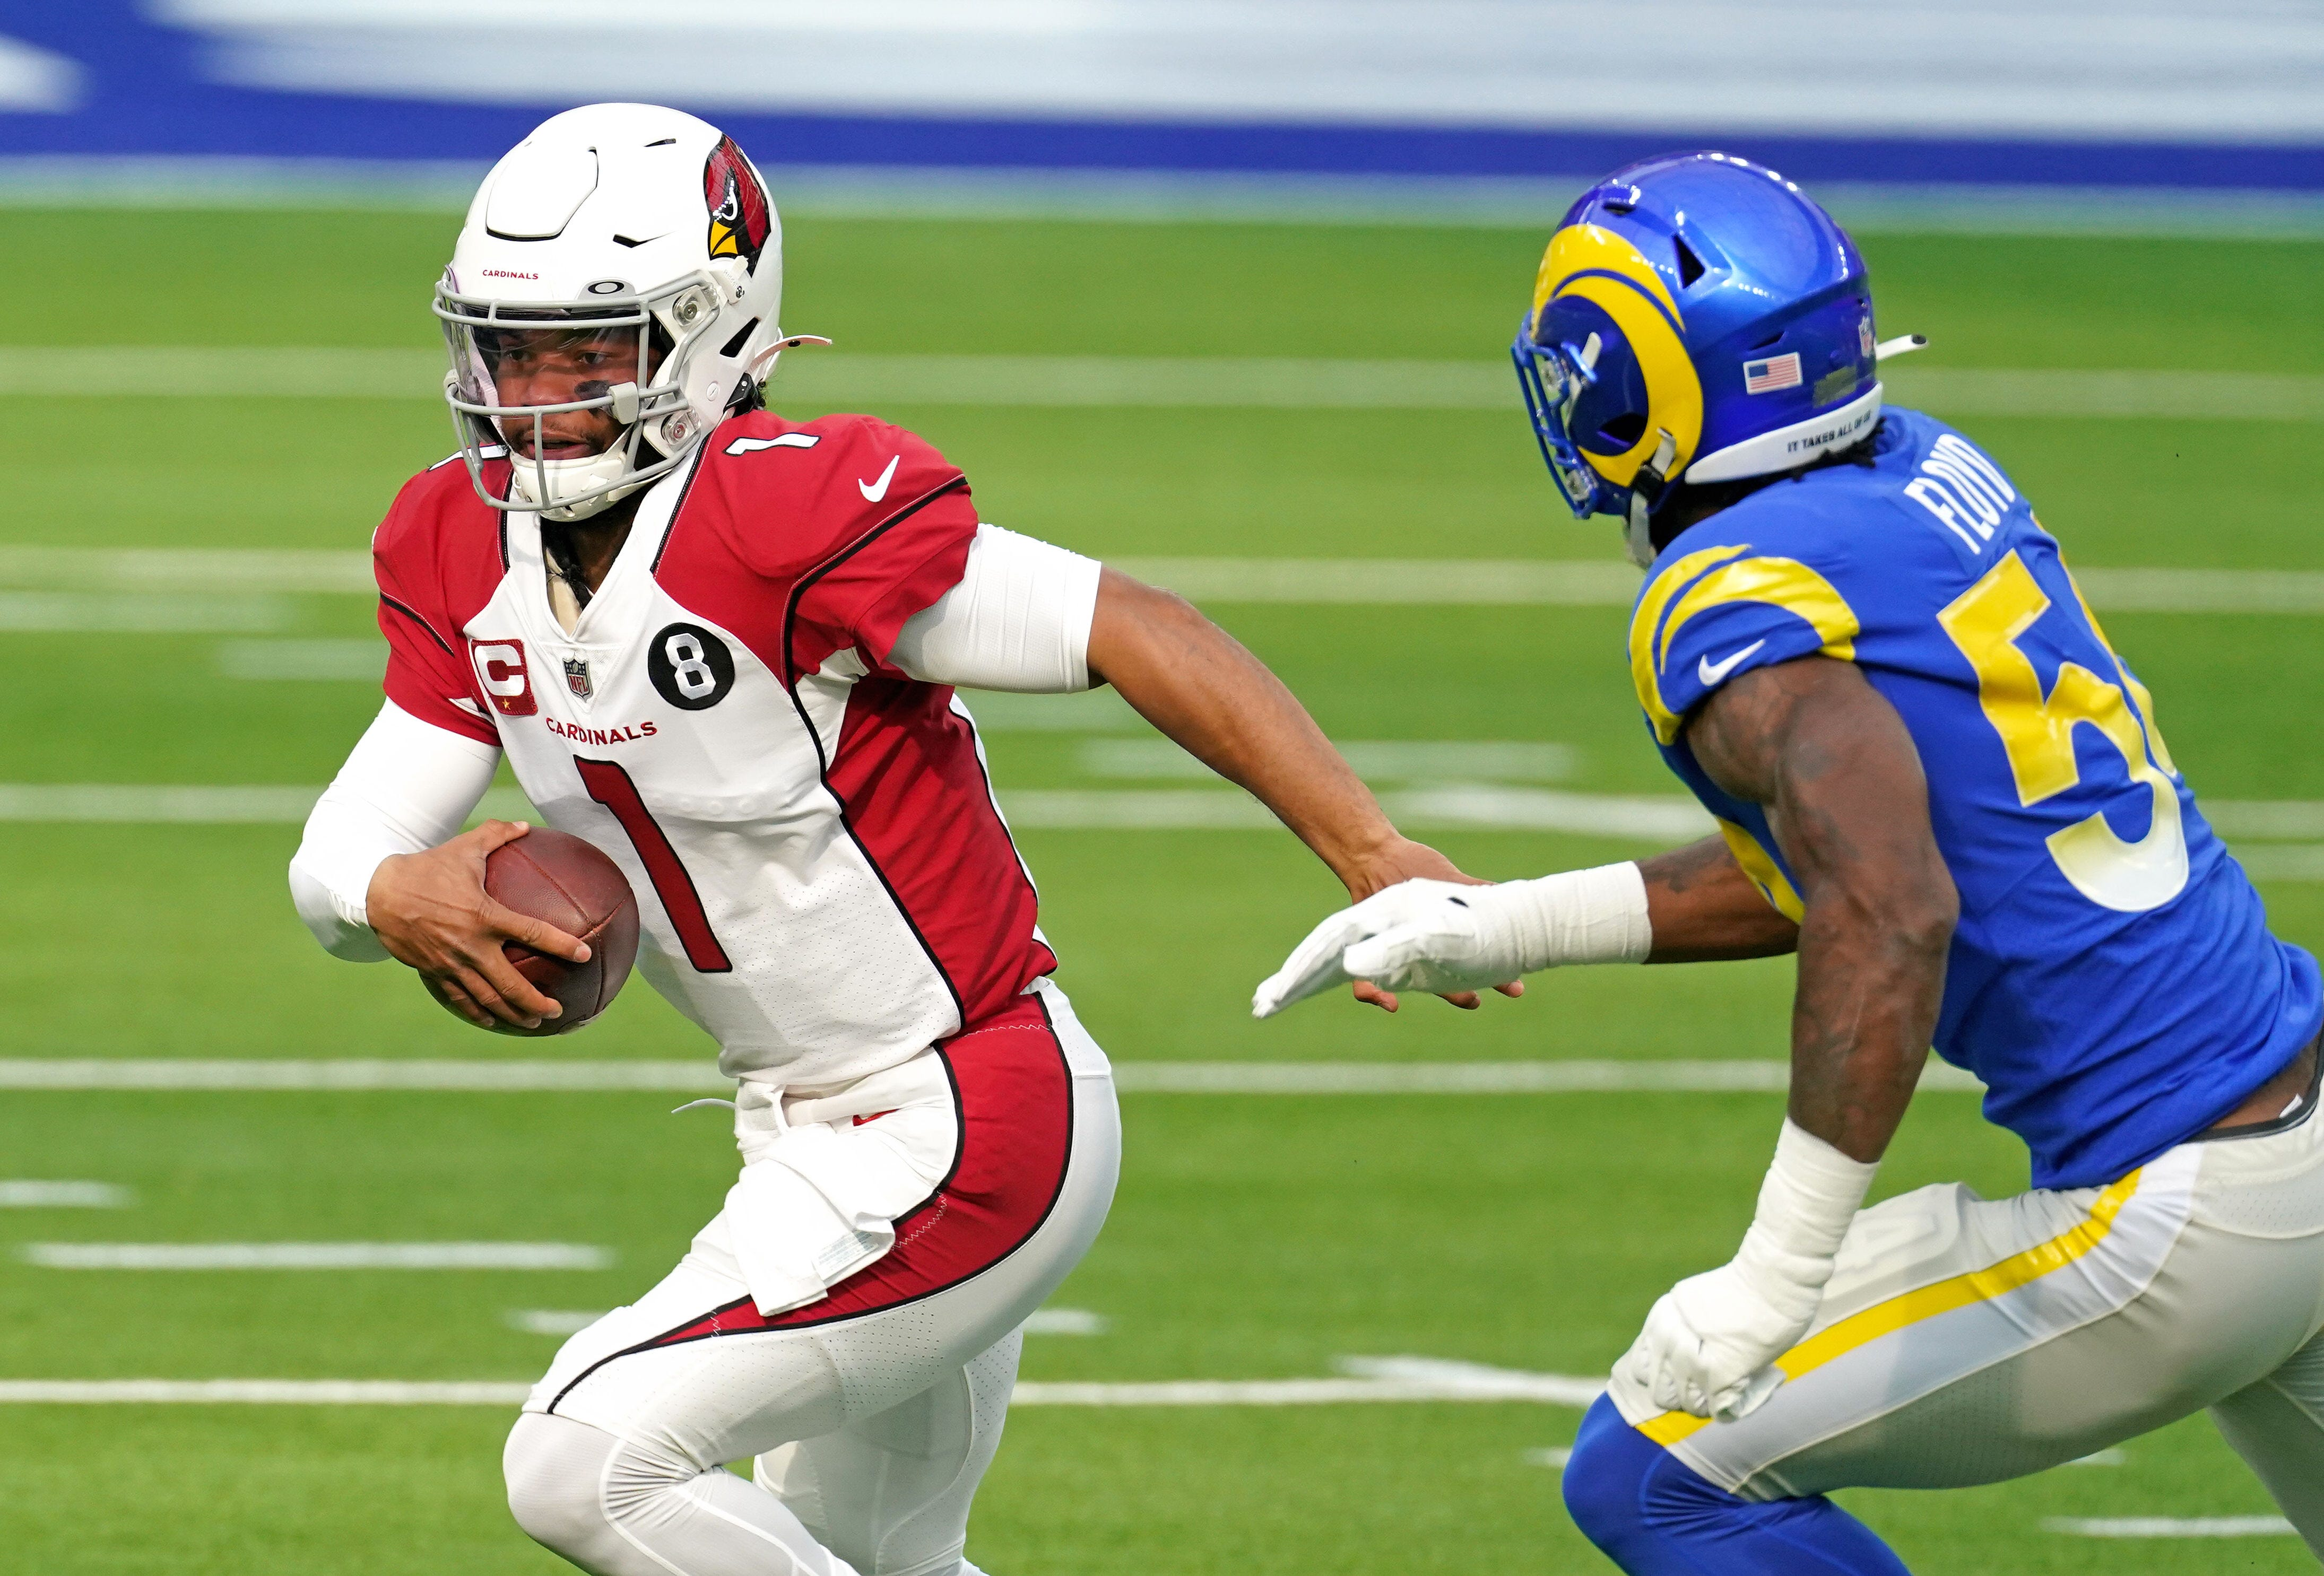 One weekend in Los Angeles could reveal a lot about Cardinals, Sun Devils